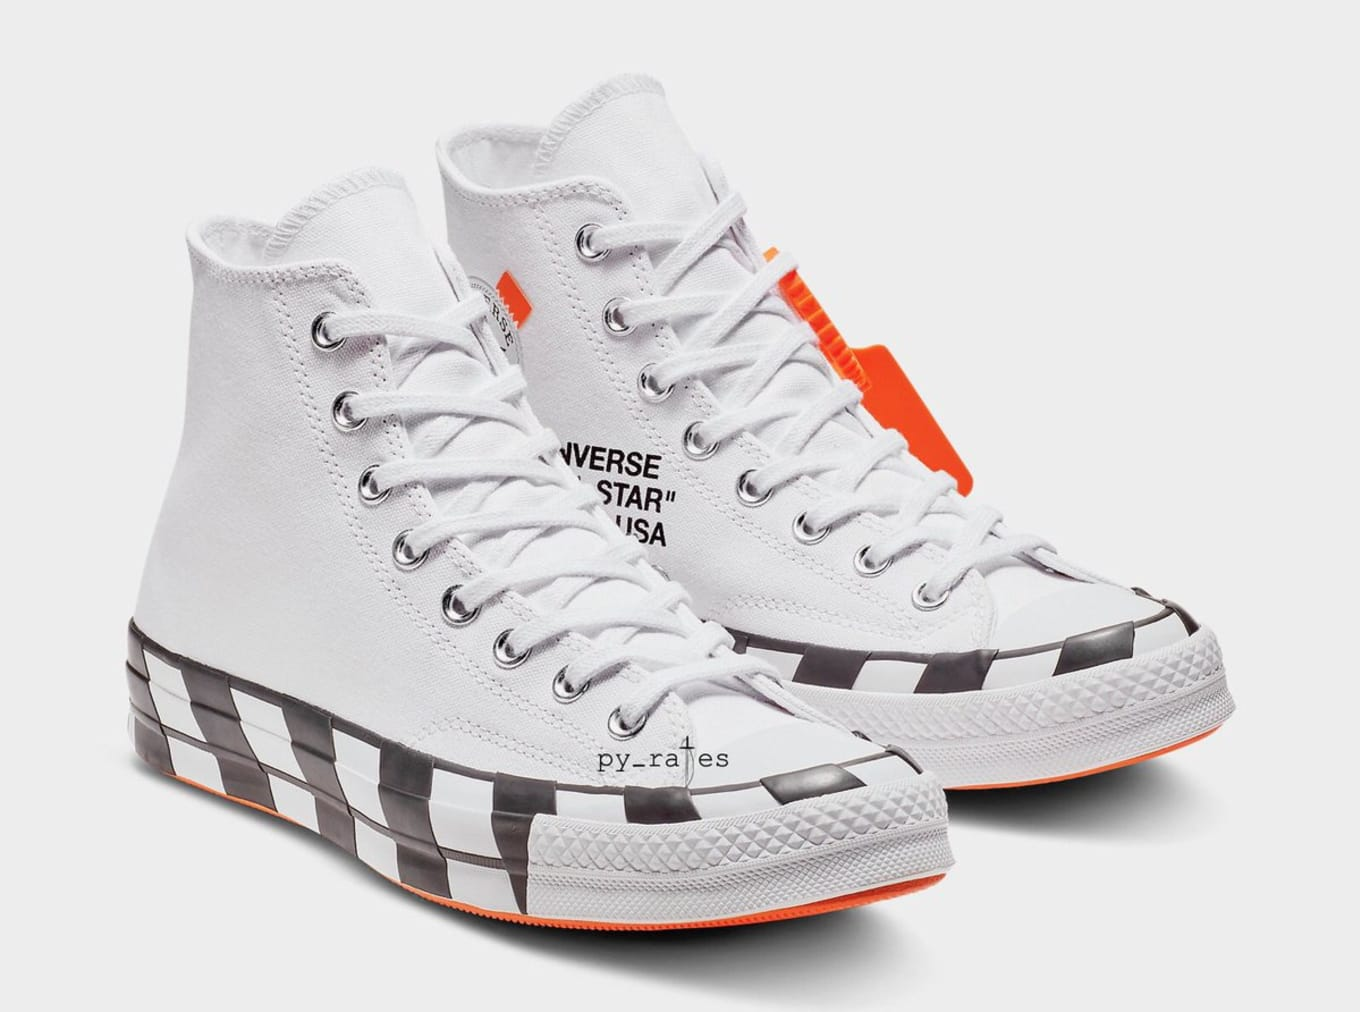 OFF WHITE x Converse Chuck Taylor 70s Original & Fake